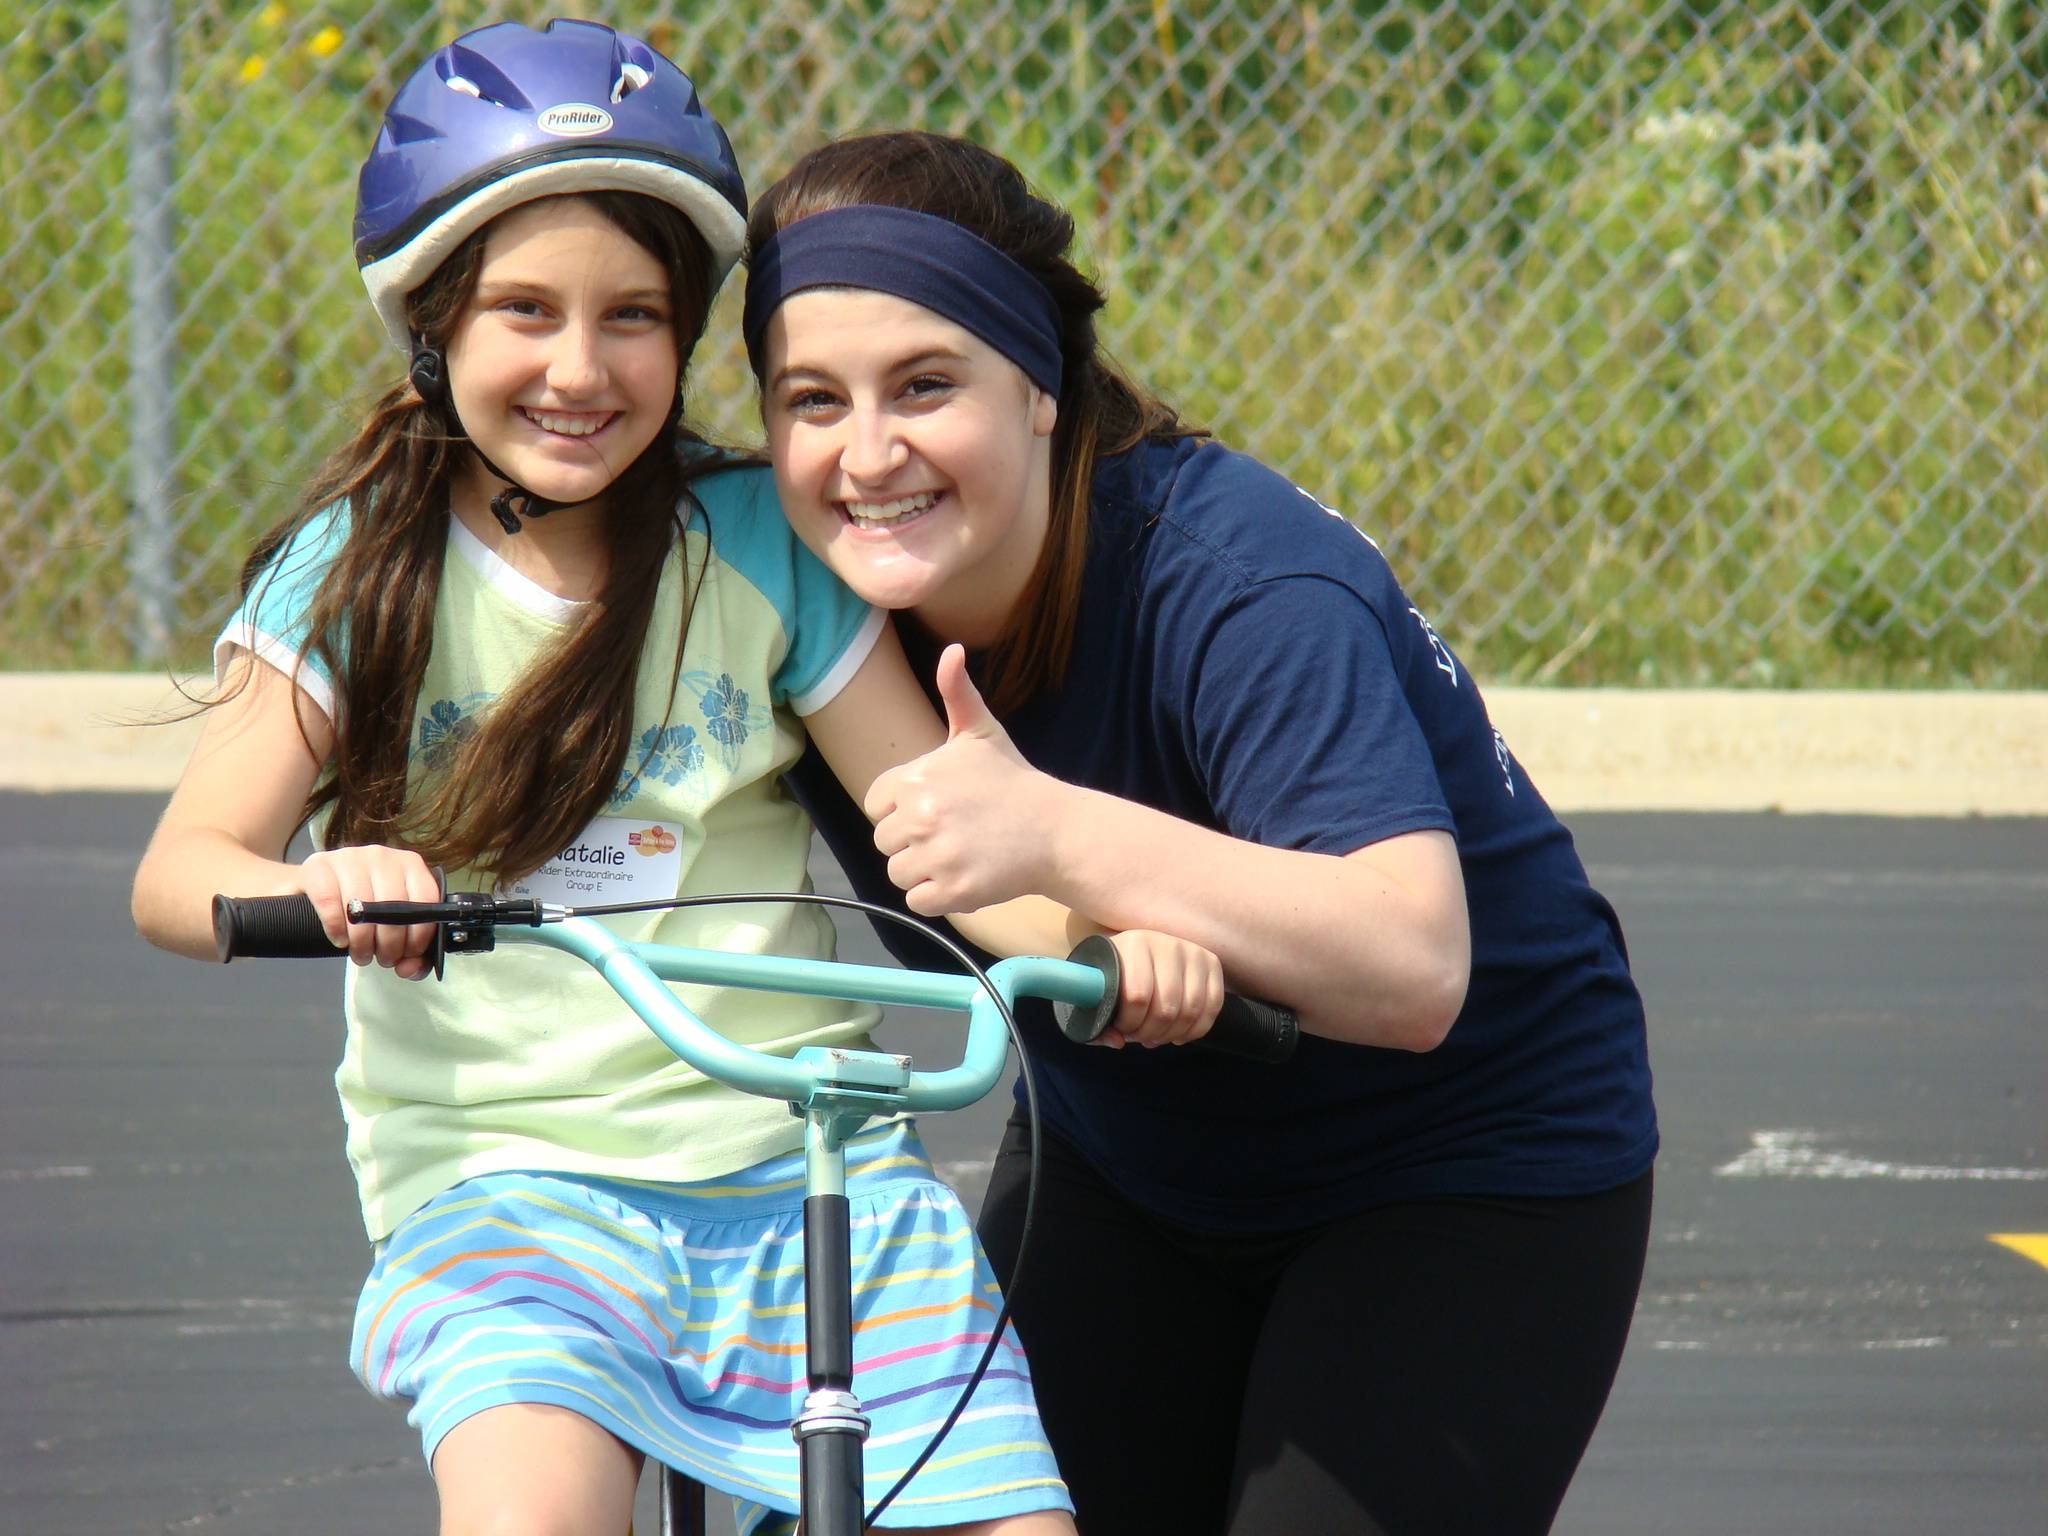 Montini Catholic High School senior, Mary Long, offers encouragement to new bikers at the iCan Bike event.Barbara Dawson